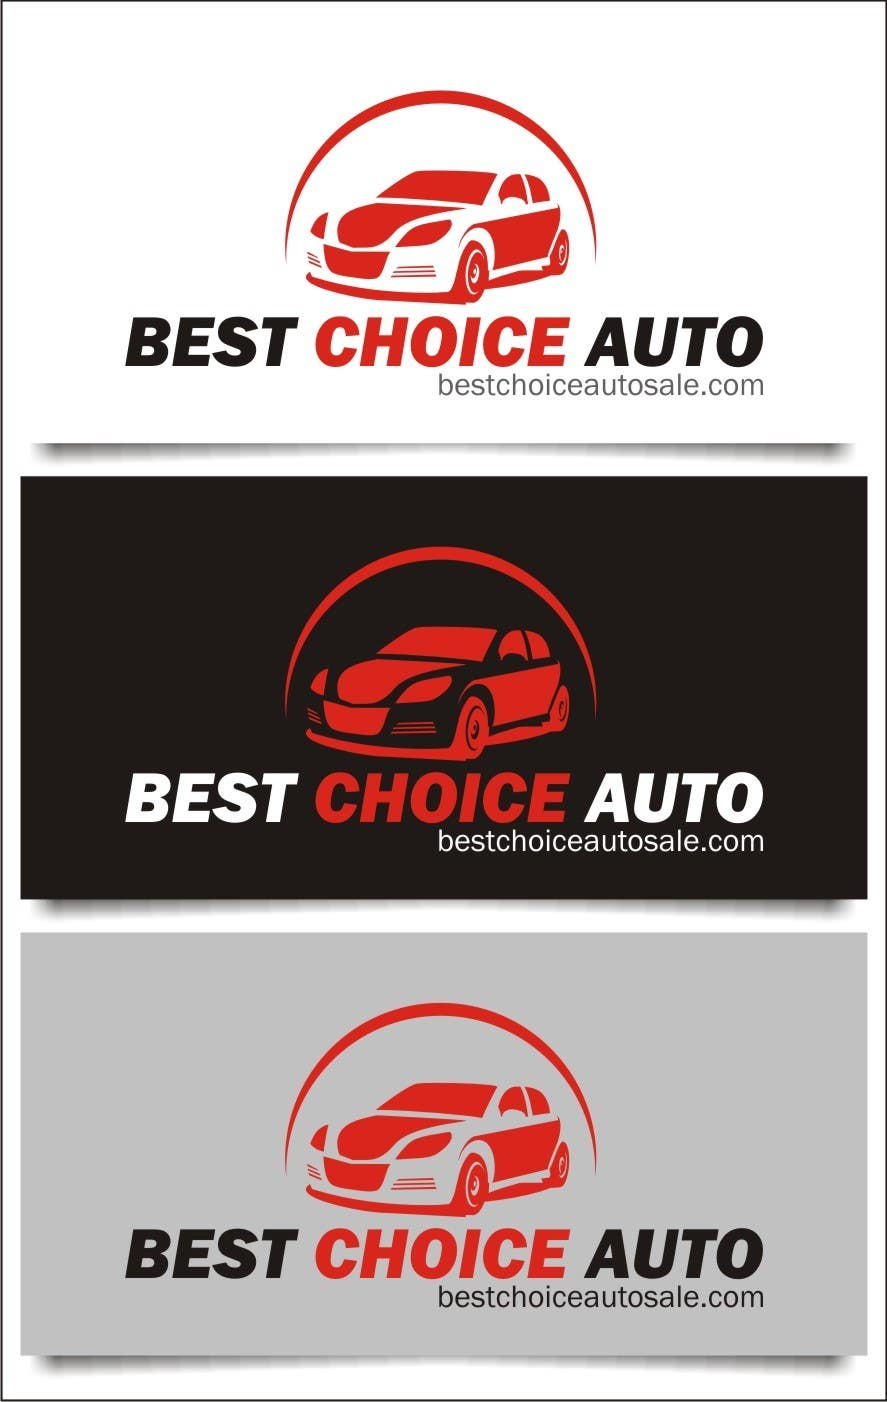 Inscrição nº 20 do Concurso para Design a Logo for Best Choice Auto